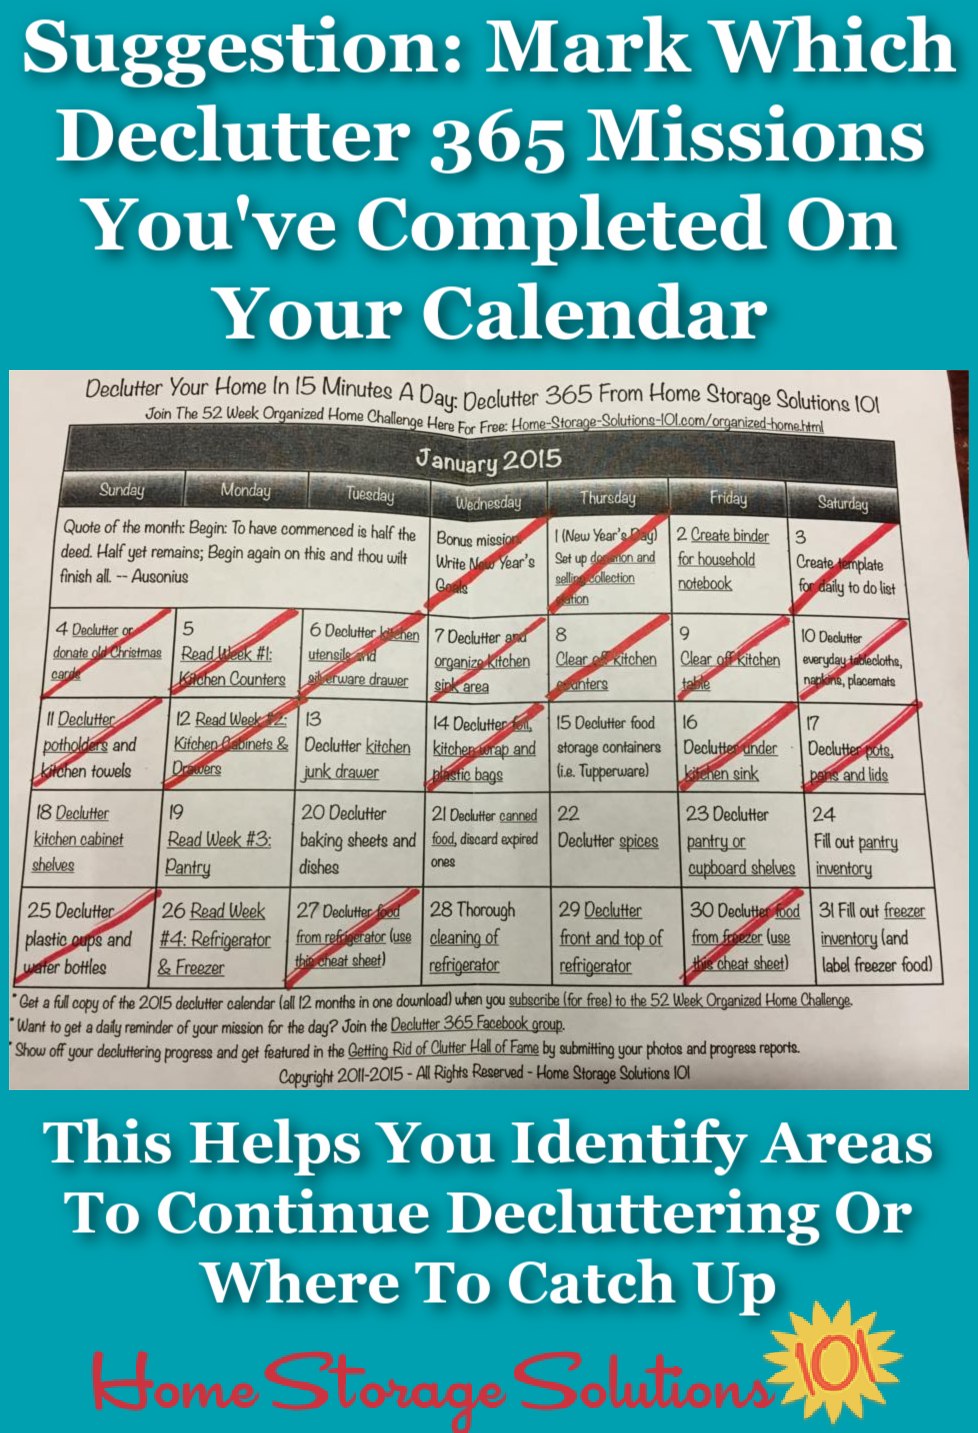 To help you keep track of which Declutter 365 missions you have and have not yet completed in your own home, and make it easier for you to identify alternative missions when a listed mission may not apply to you, mark your completed missions on your printable Declutter 365 calendar {on Home Storage Solutions 101} #Declutter365